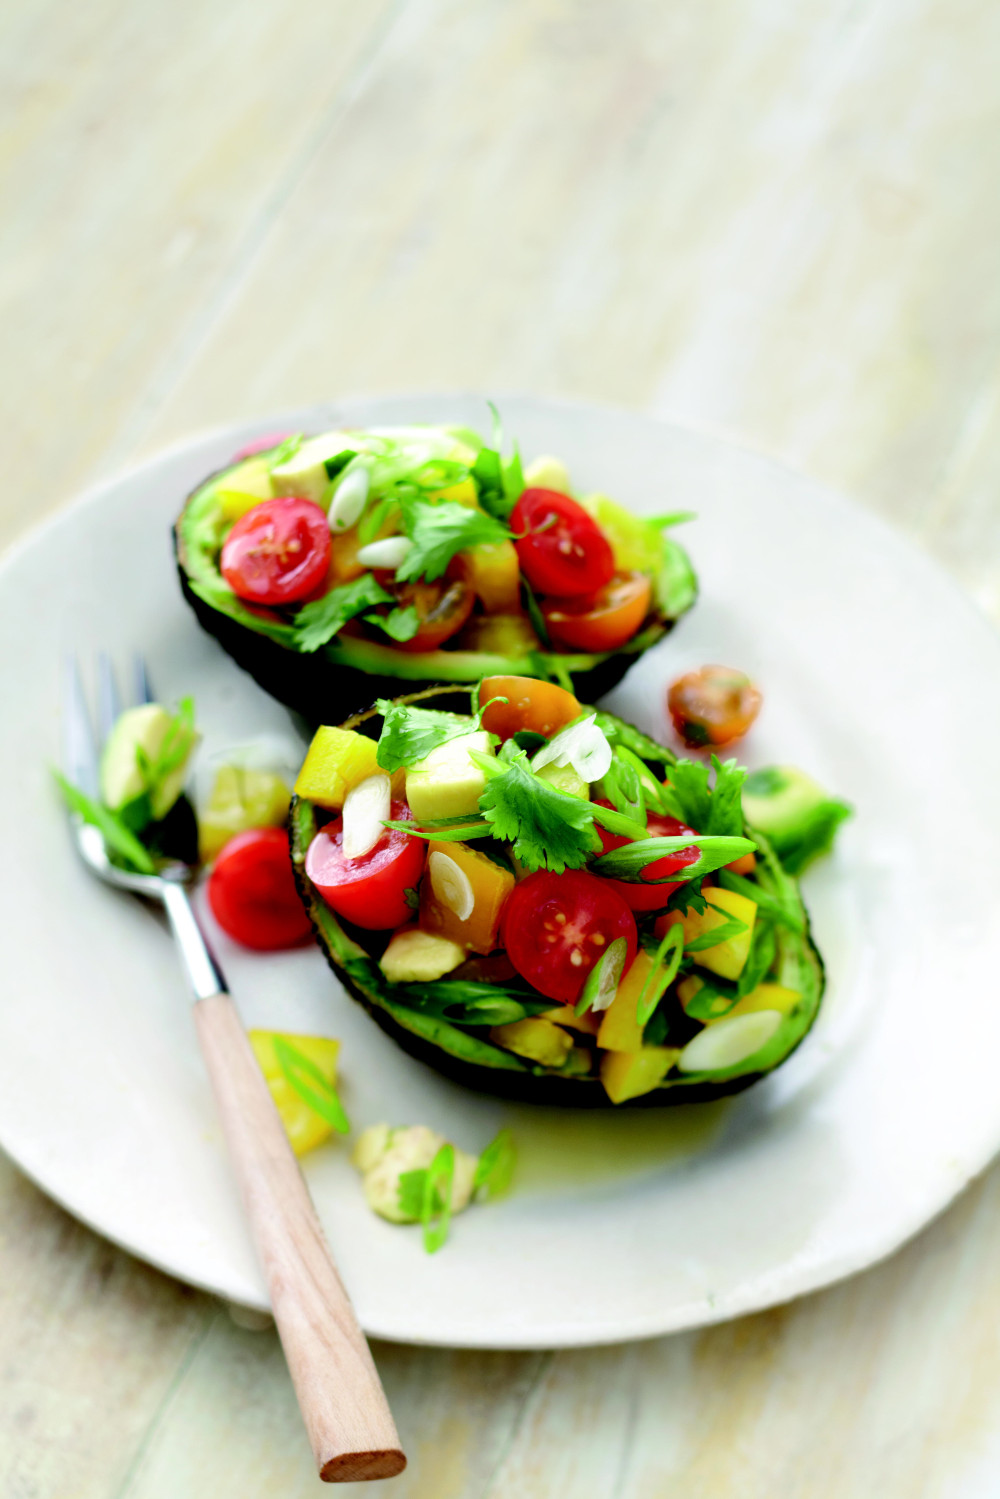 031_Mart_Avocado Salad with Bell Peppers and Tomatoes_art_r1[4]